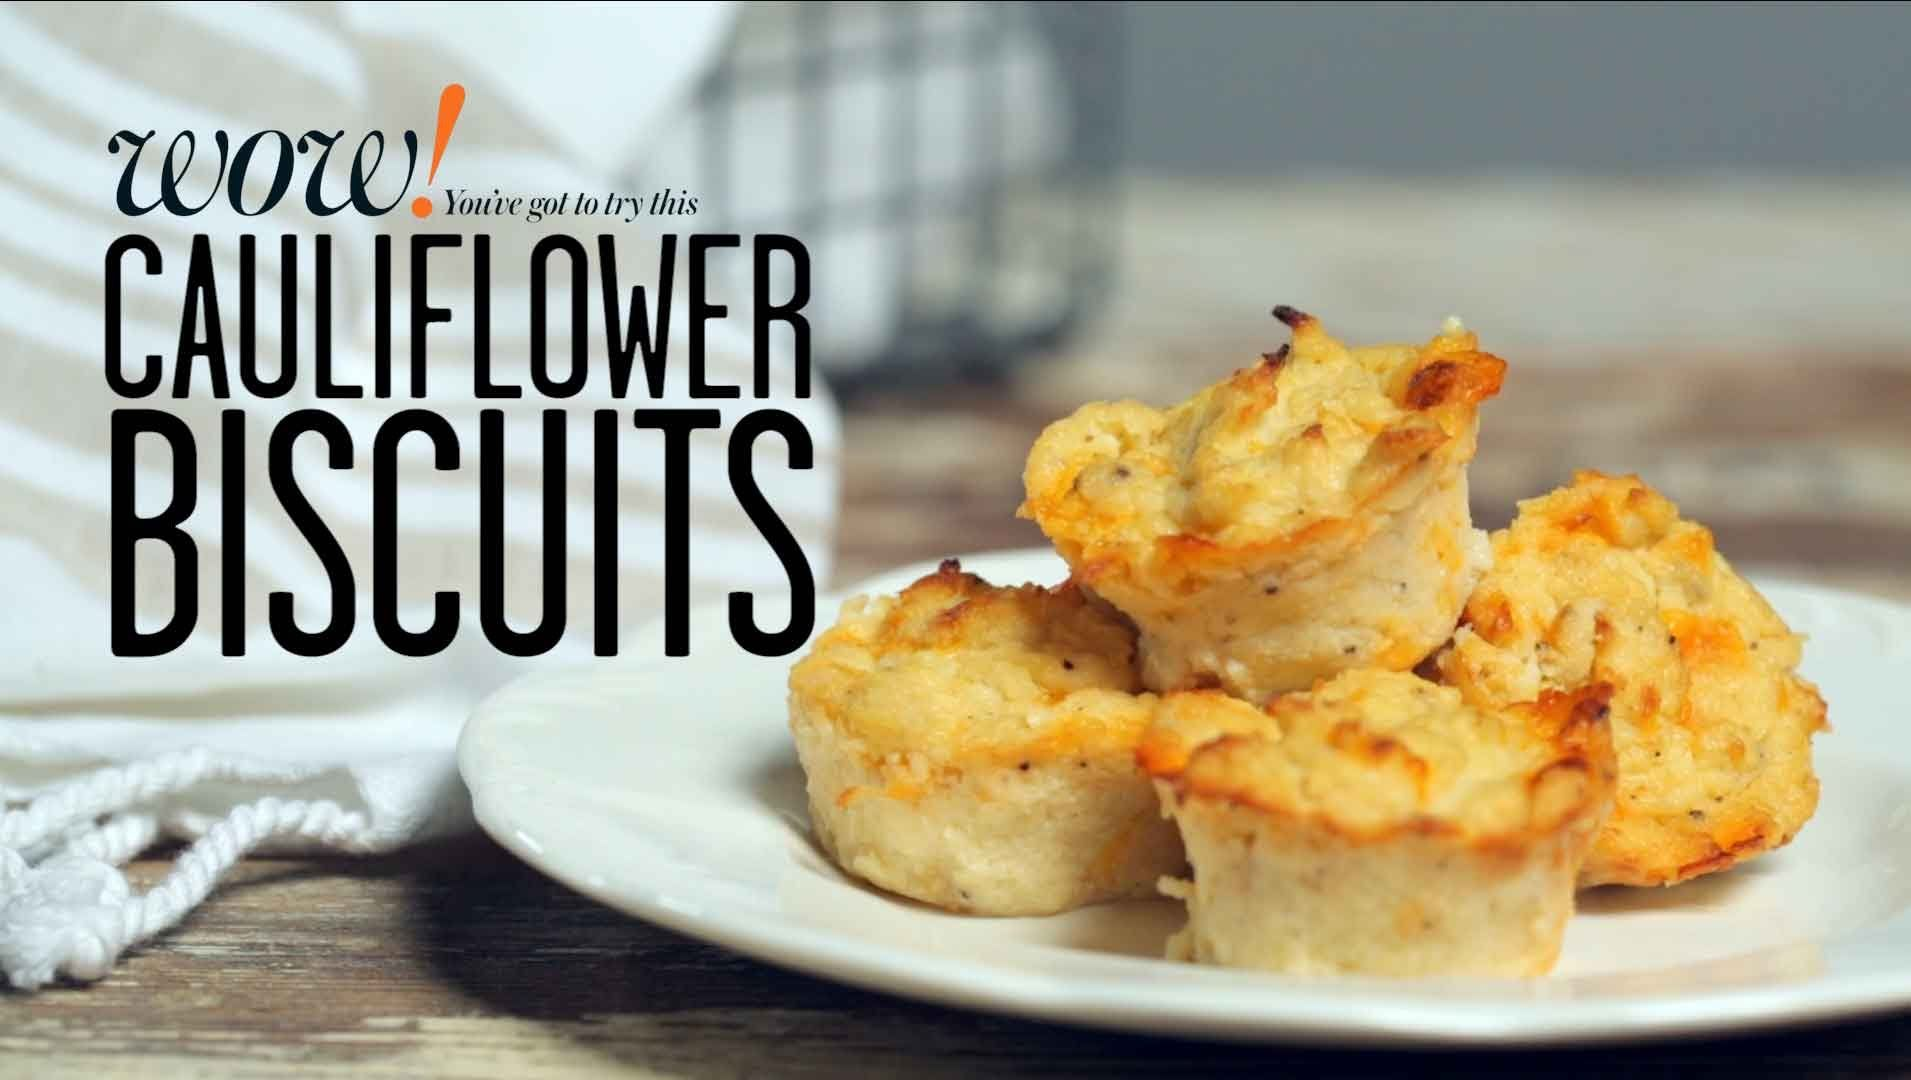 Cauliflower Biscuits Wow Cooking Light Food Recipes How To